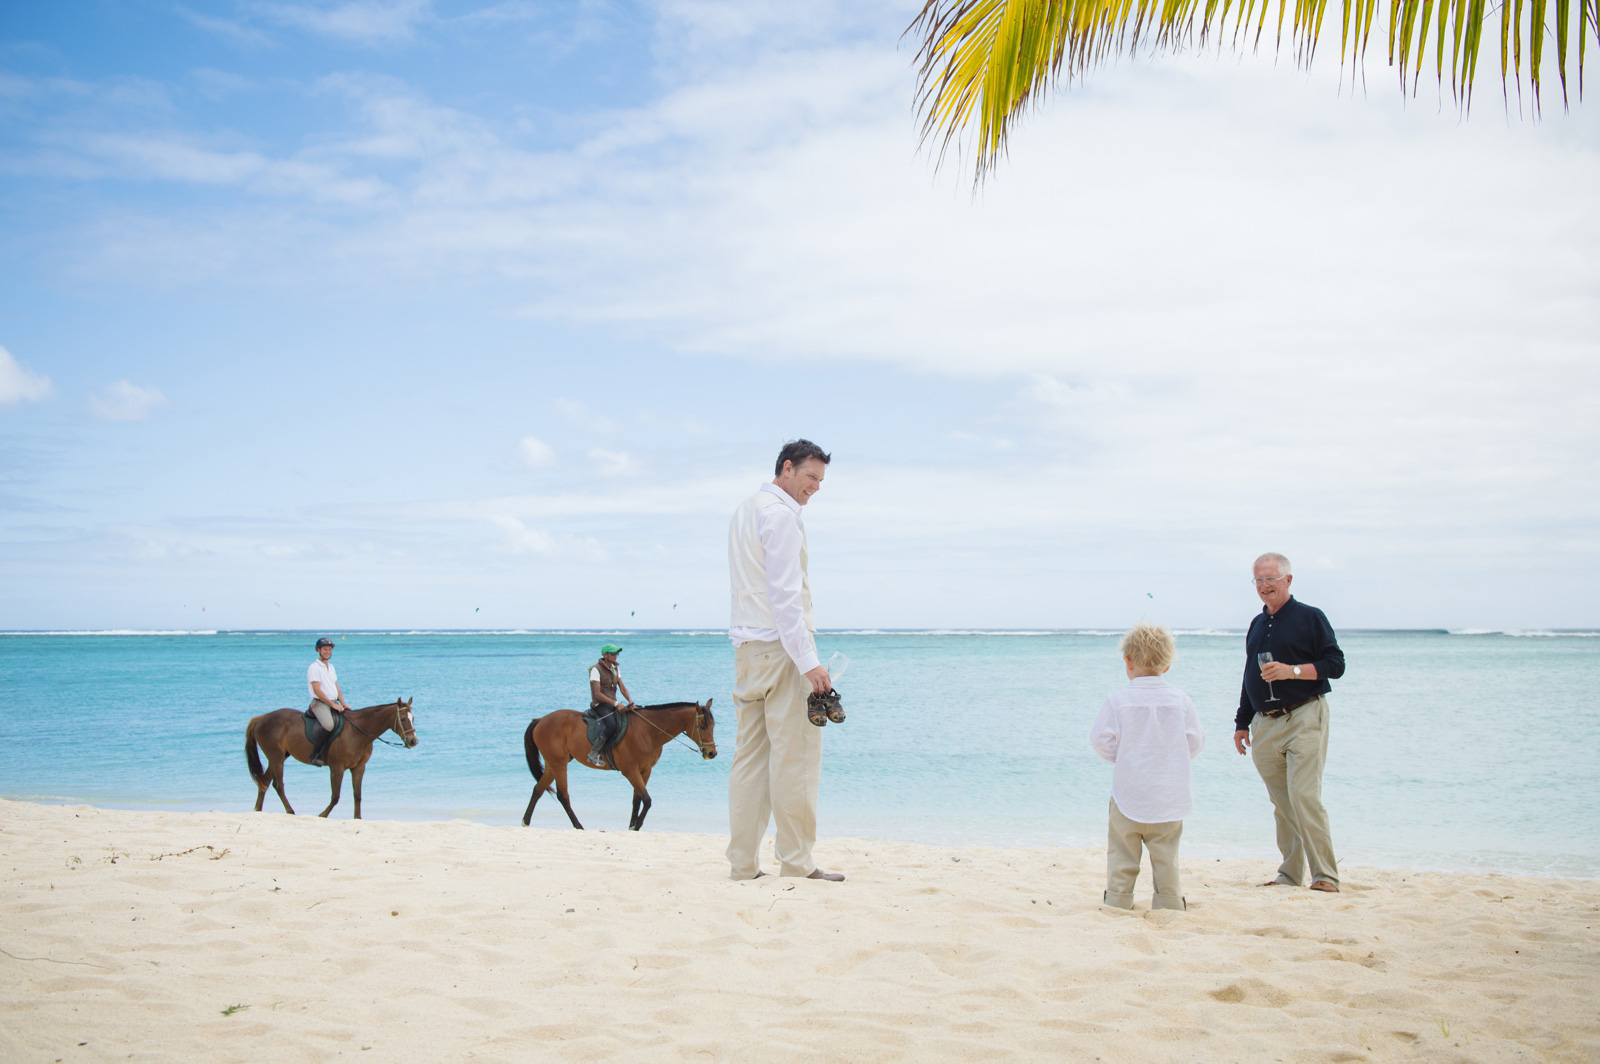 man on beach with horses